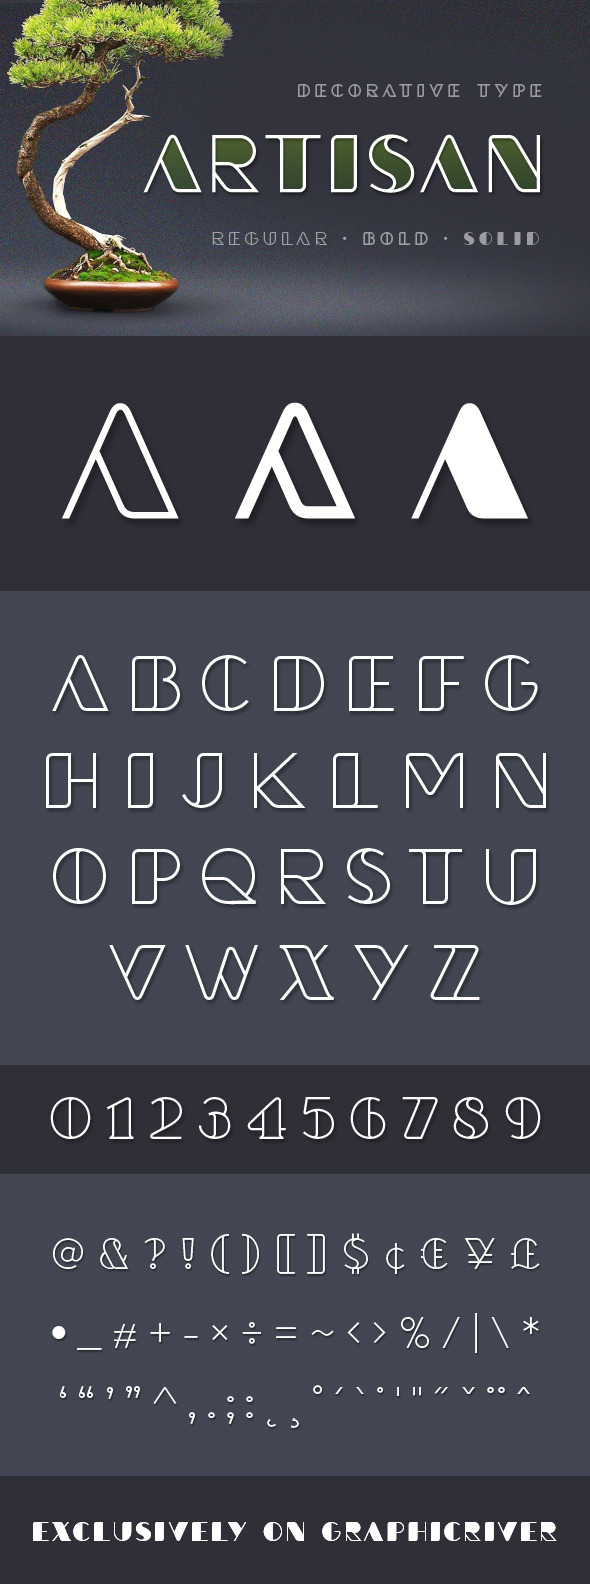 Artisan st Typeface - Decorative Fonts